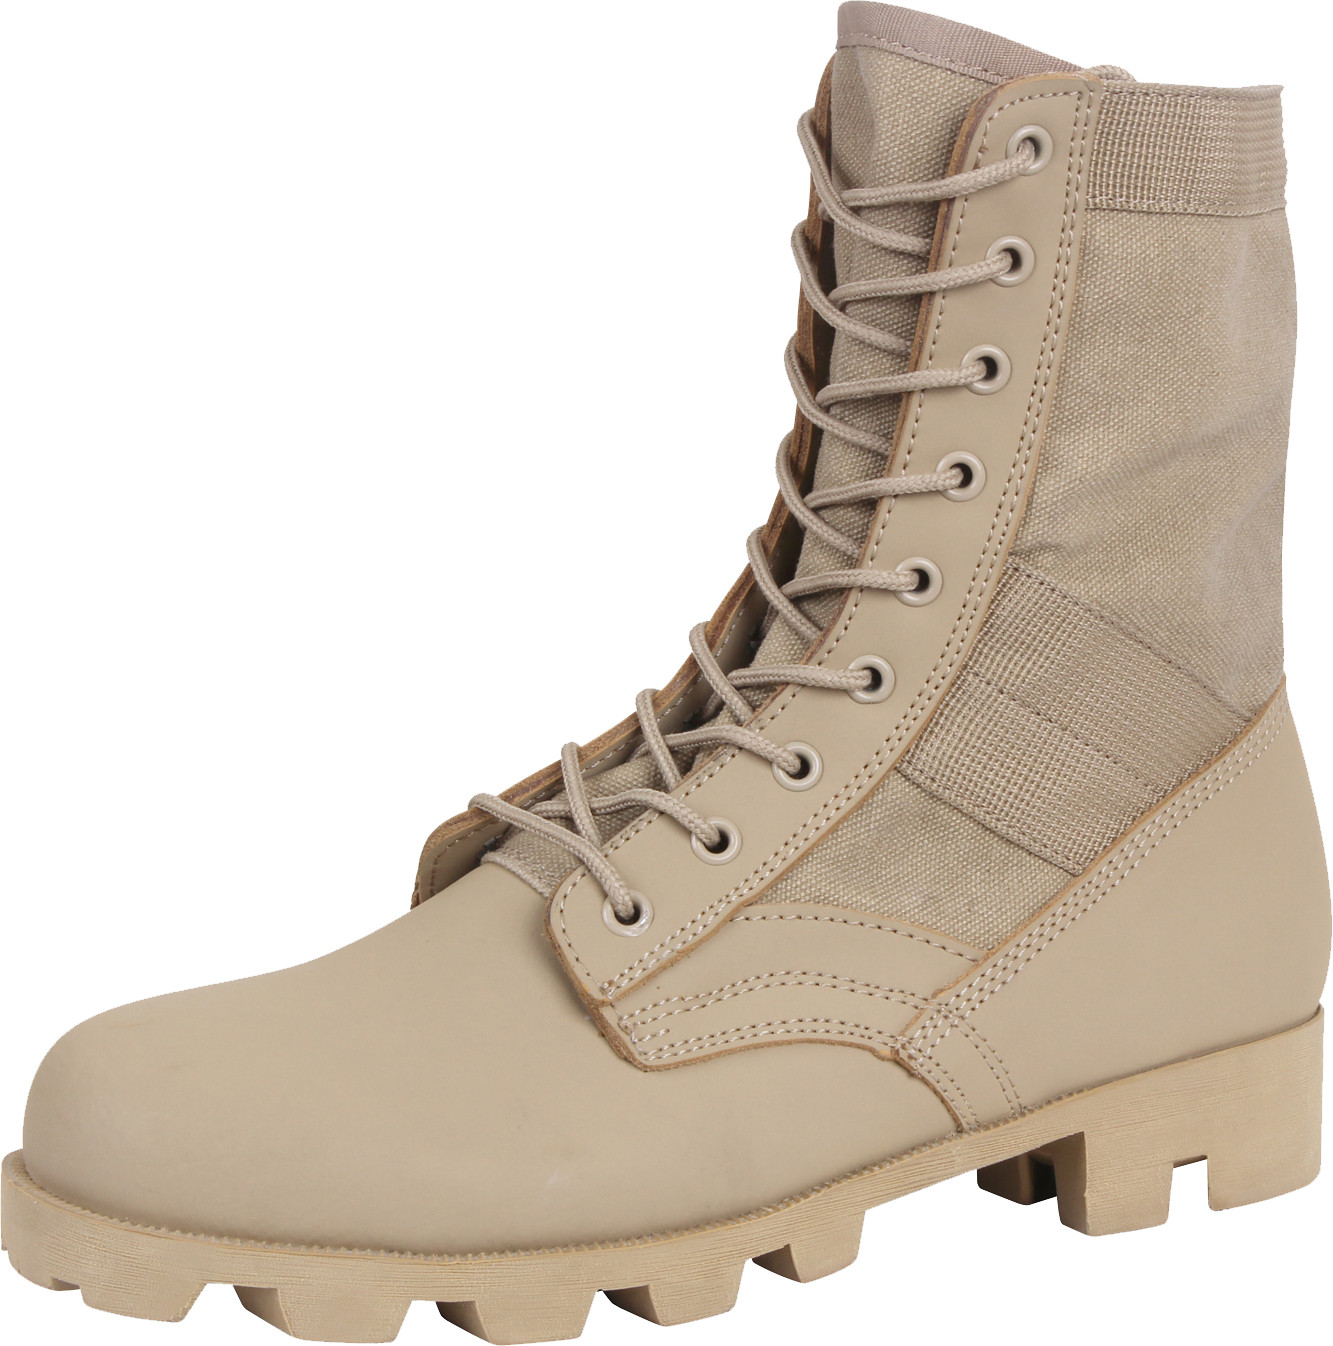 Desert Sand Leather Panama Sole Military Combat Jungle Boots 78235477bf7